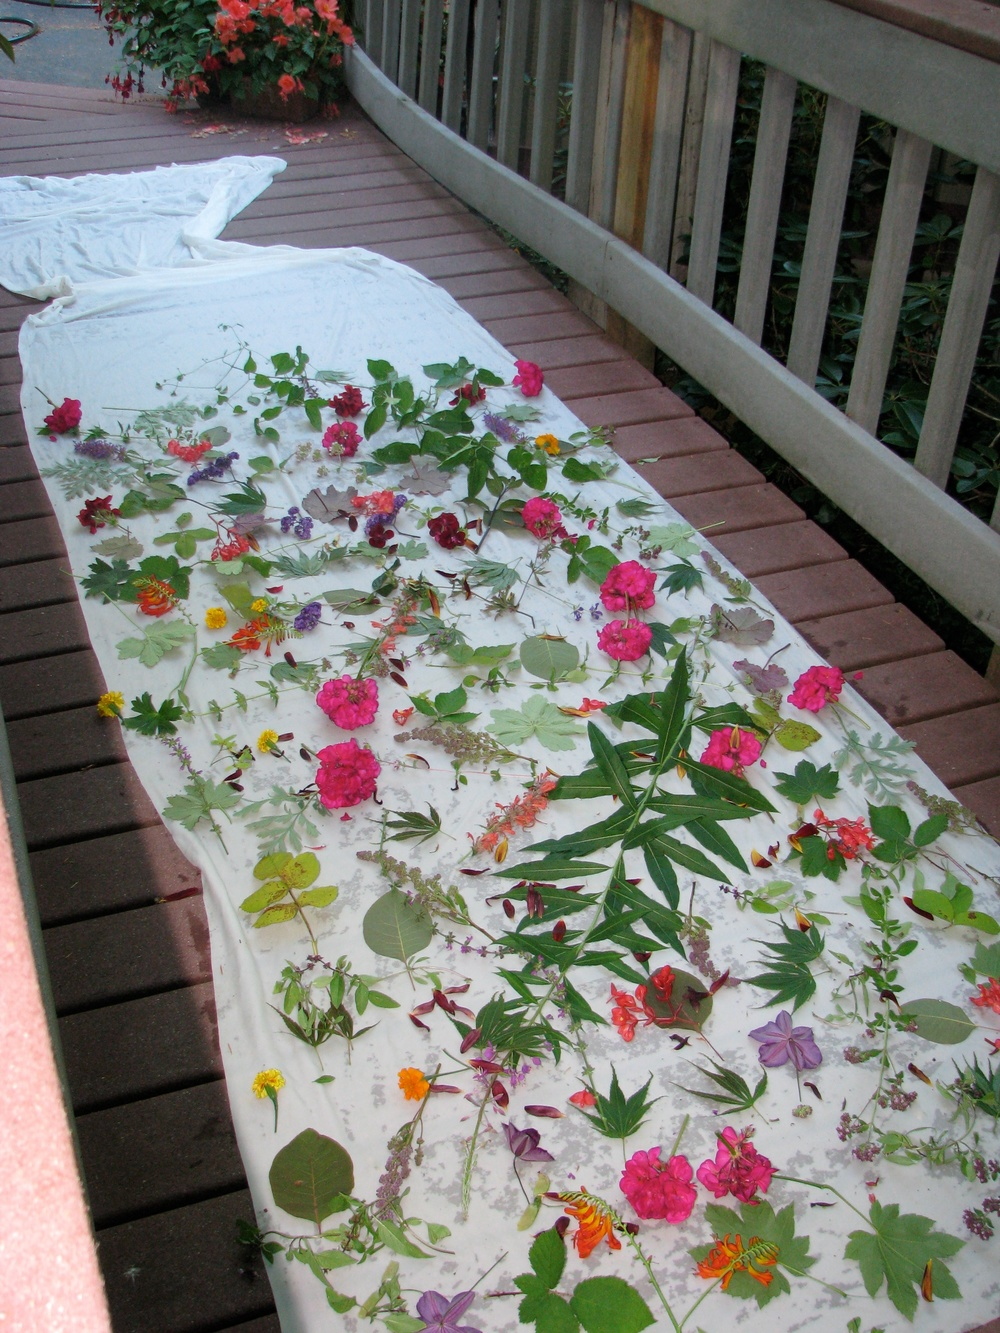 Leaves and Flowers laid out and ready to bundle